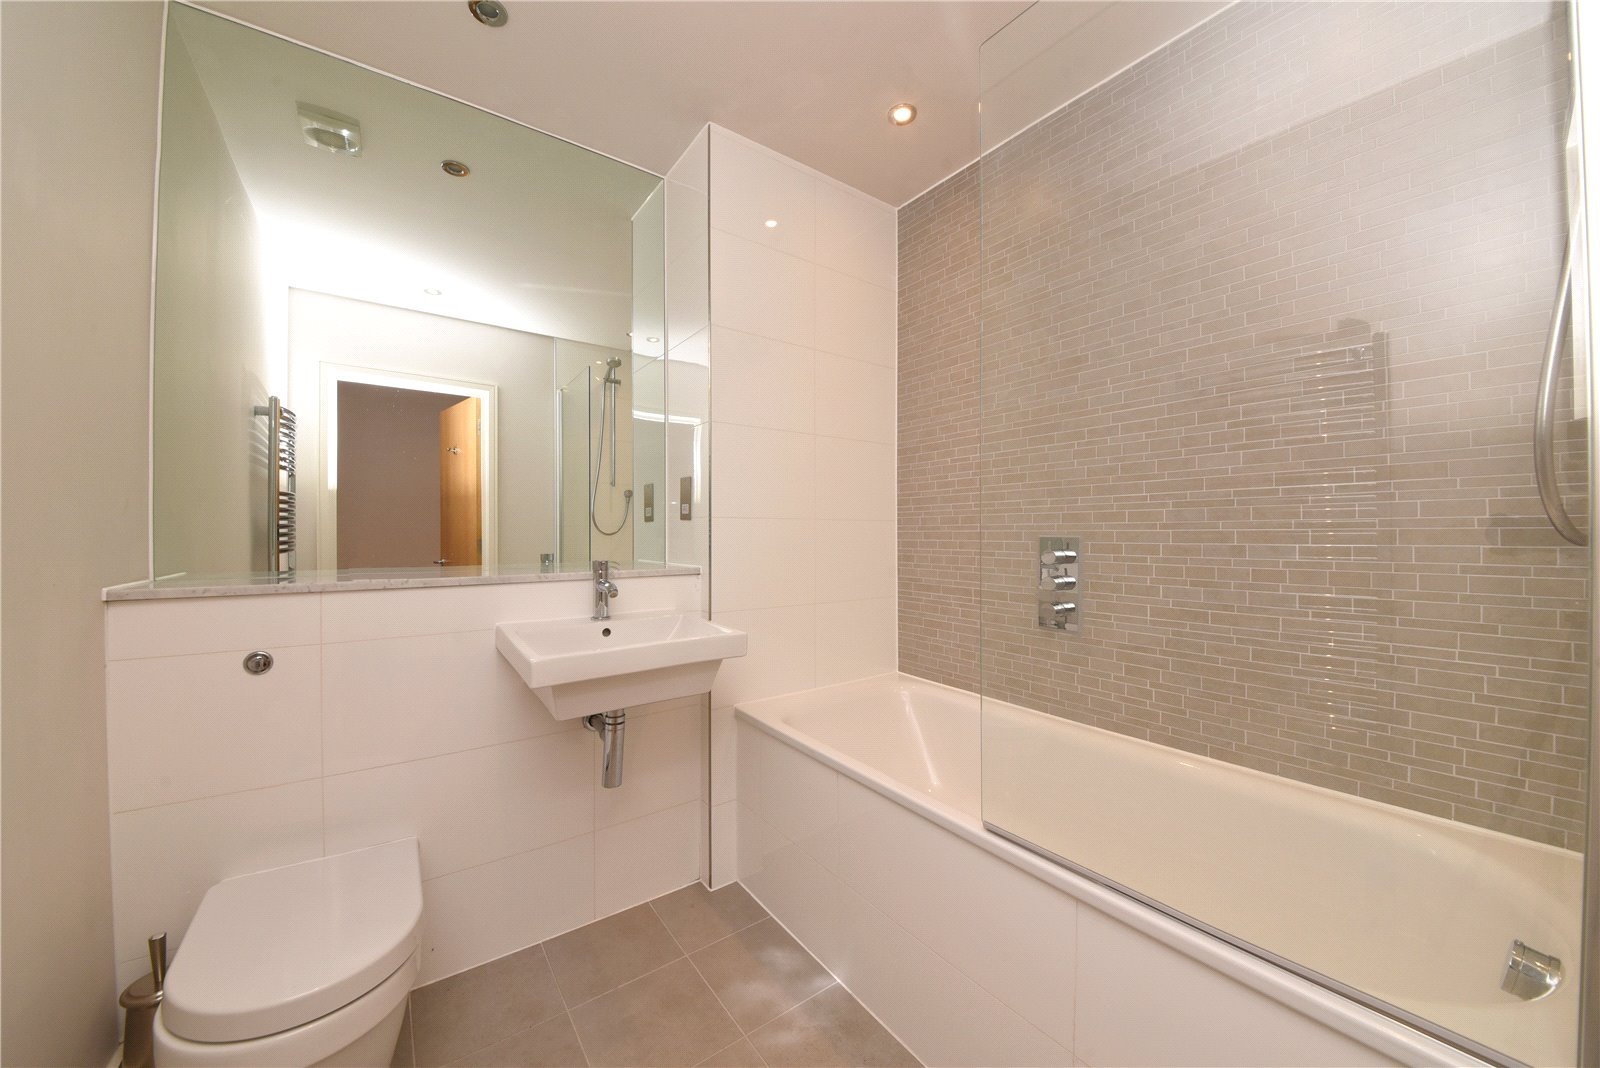 2 bed apartment for sale in Mill Hill East, NW7 1ND 2